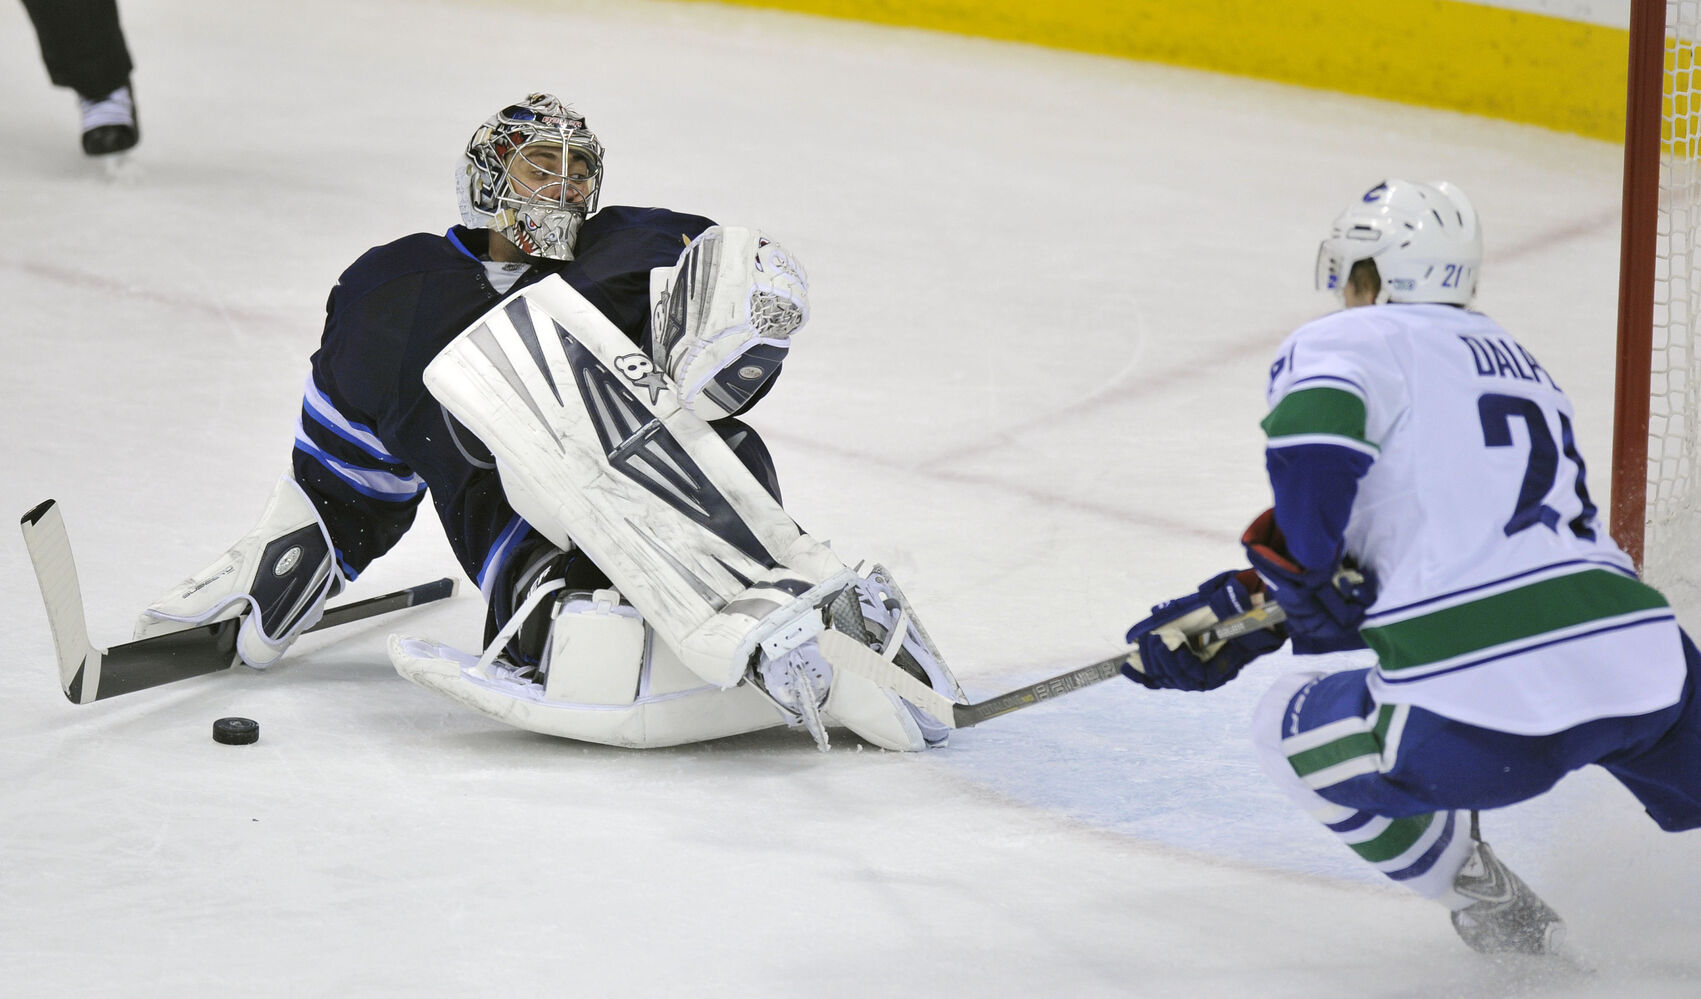 Winnipeg Jets' goaltender Ondrej Pavelec ties it up with  Vancouver Canucks' Zac Dalpe during second period in Winnipeg Friday.